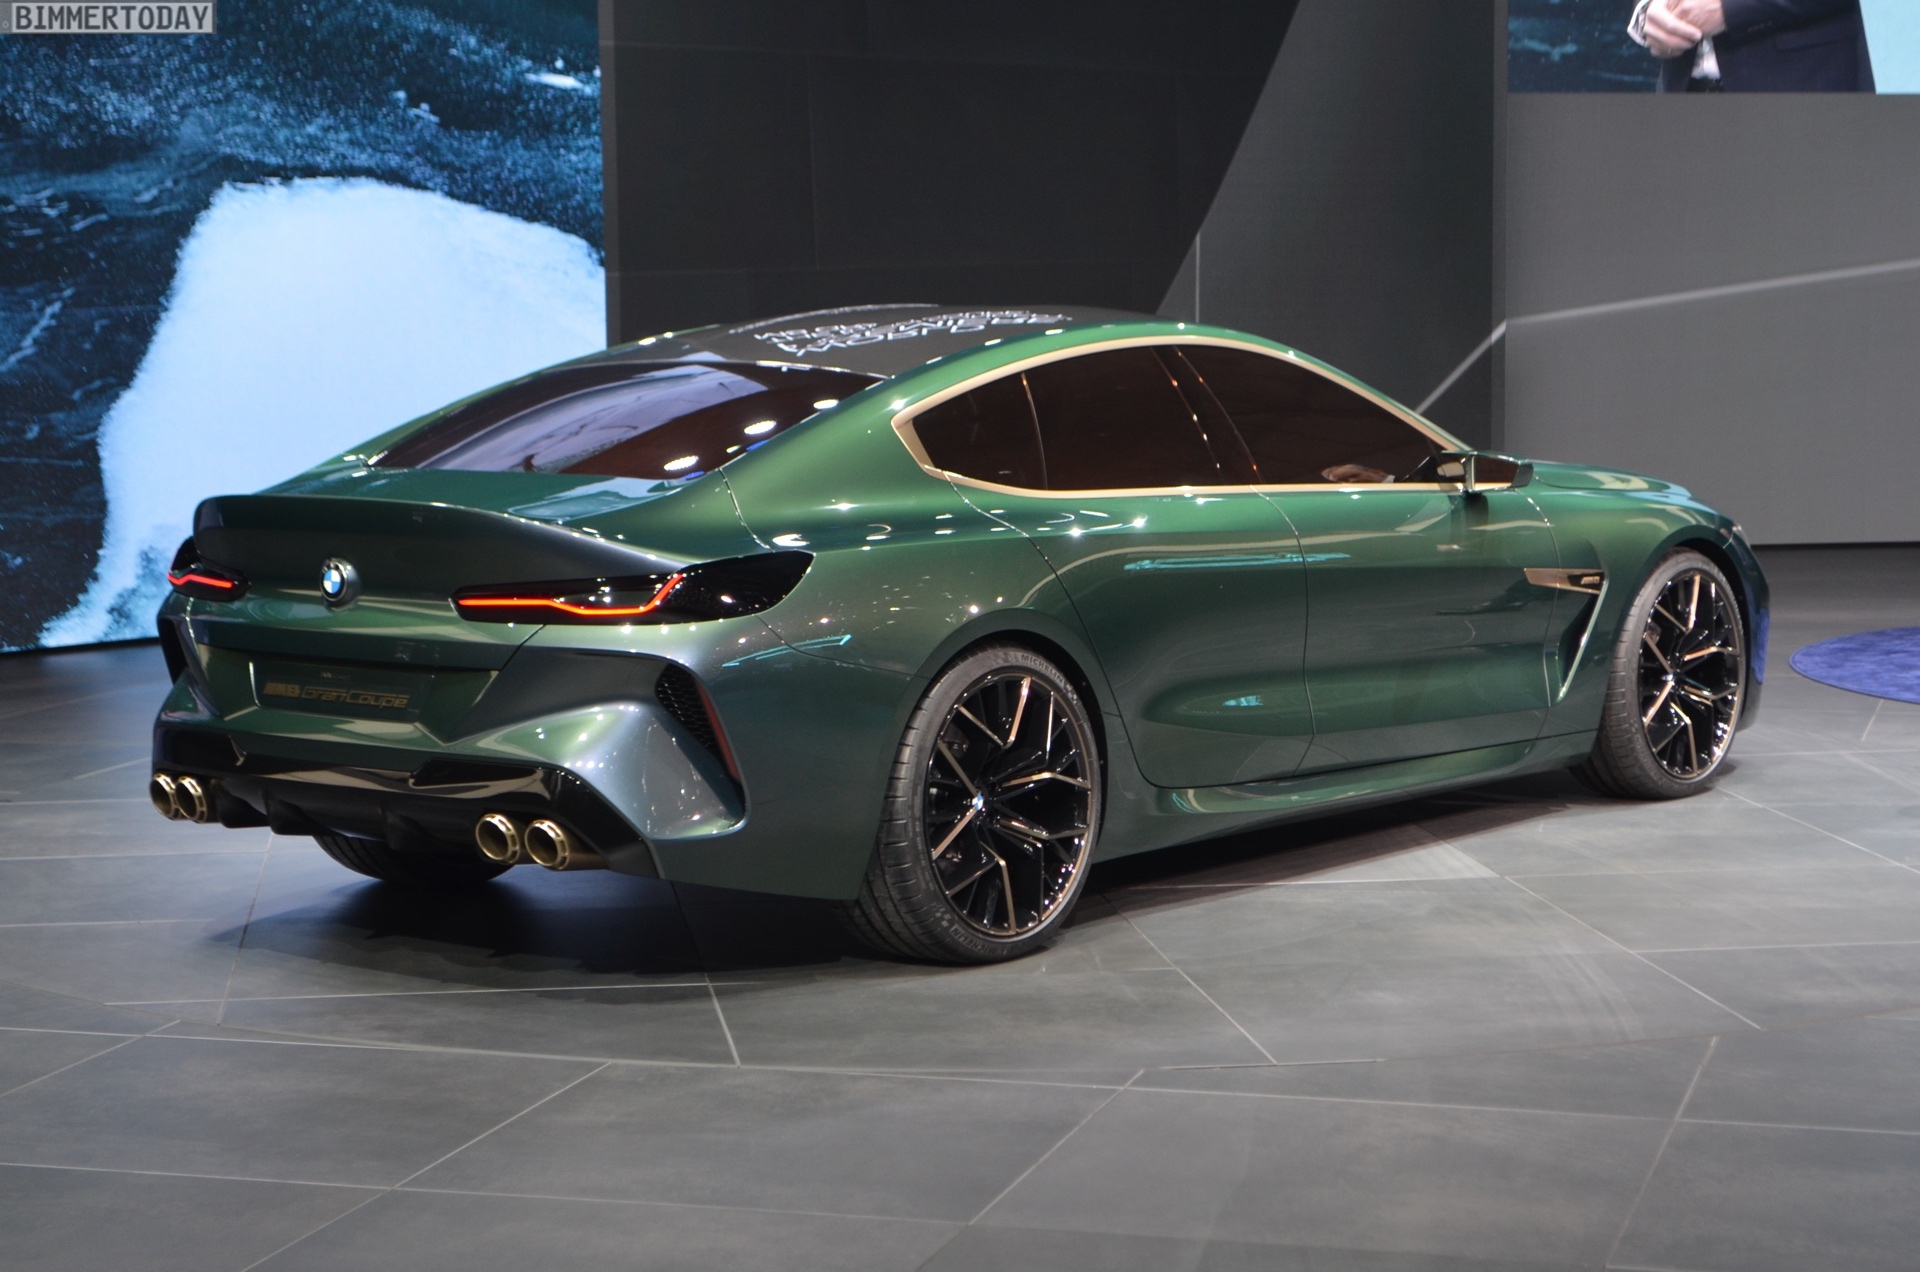 Sports Cars Luxury >> BMW Concept M8 Gran Coupe - First Videos